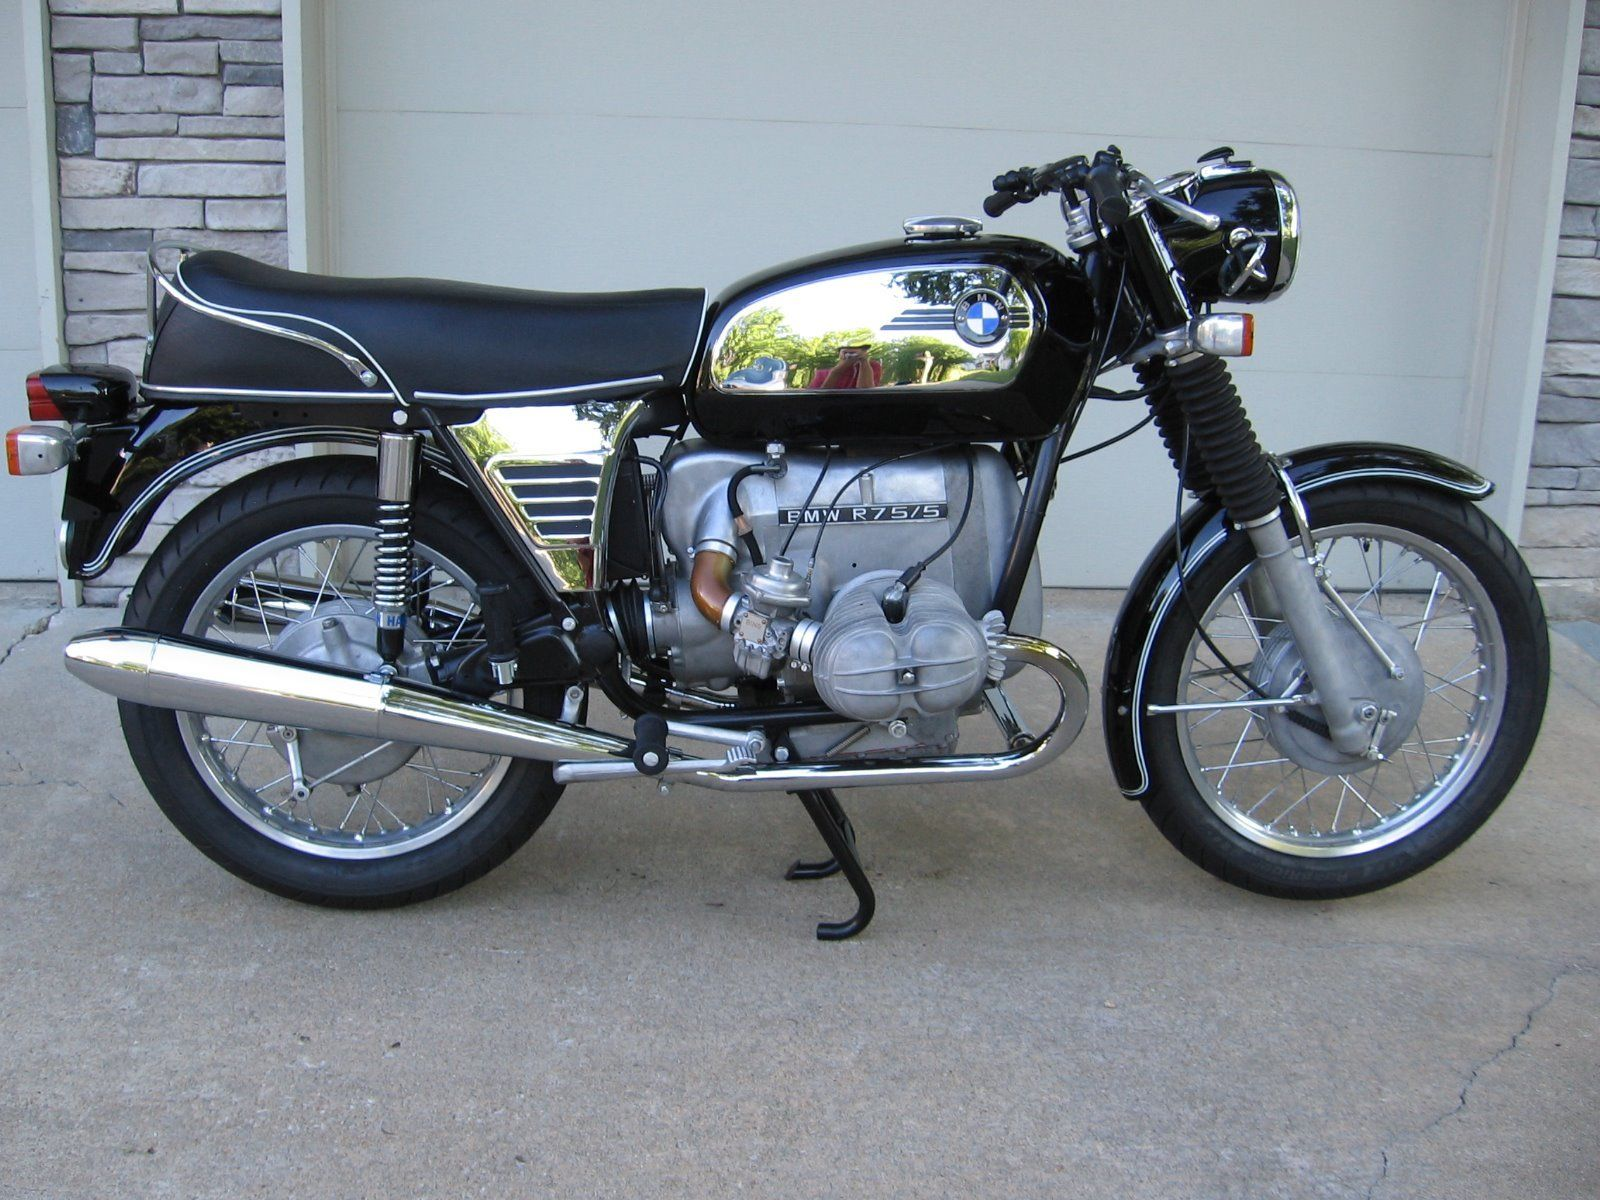 Restored Bmw R75 5 1972 Photographs At Classic Bikes